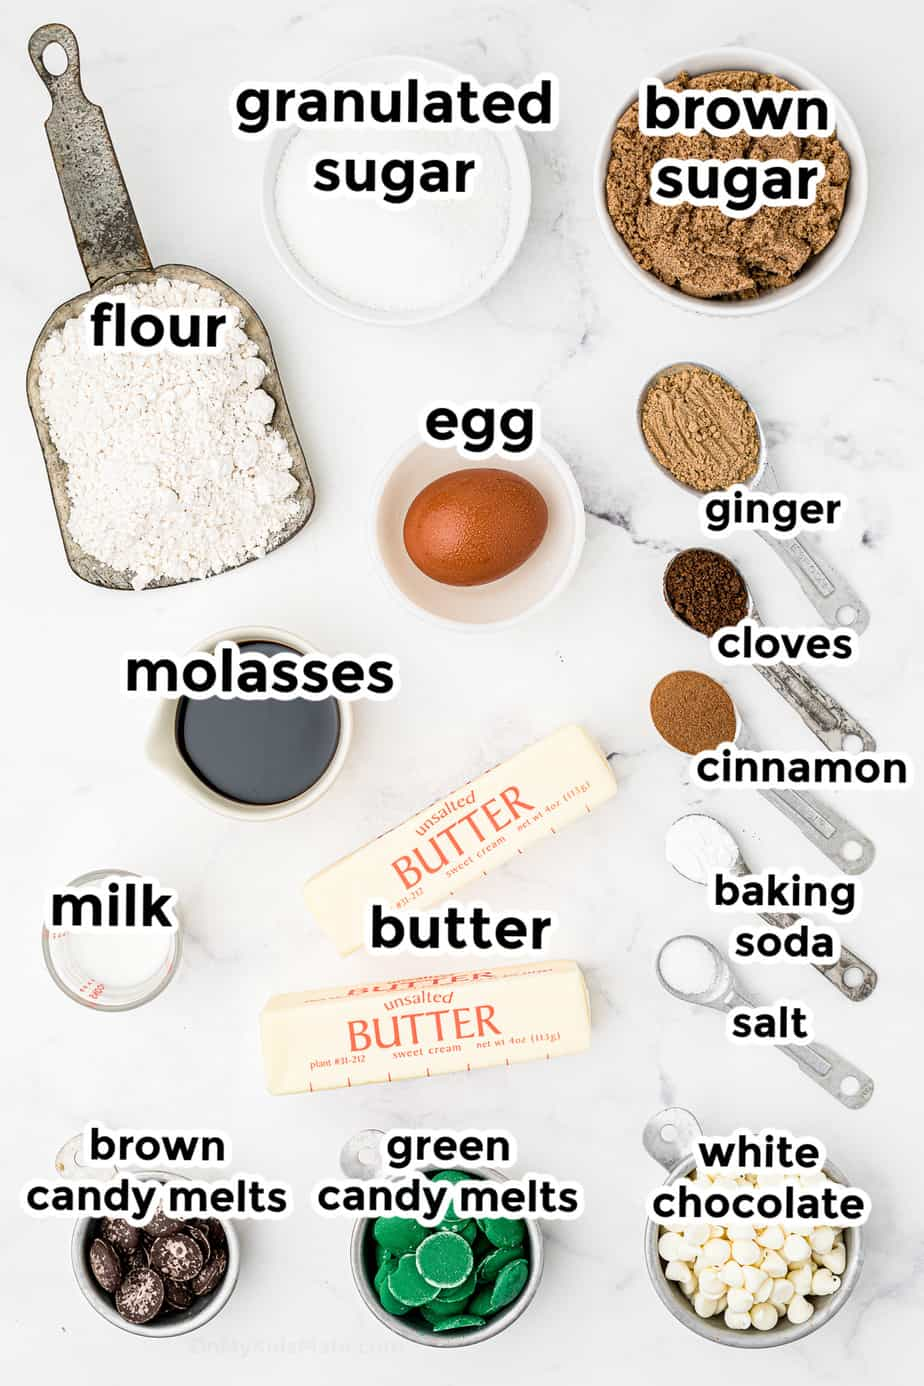 Ingredients for molasses ginger cookies in bowls overhead labeled